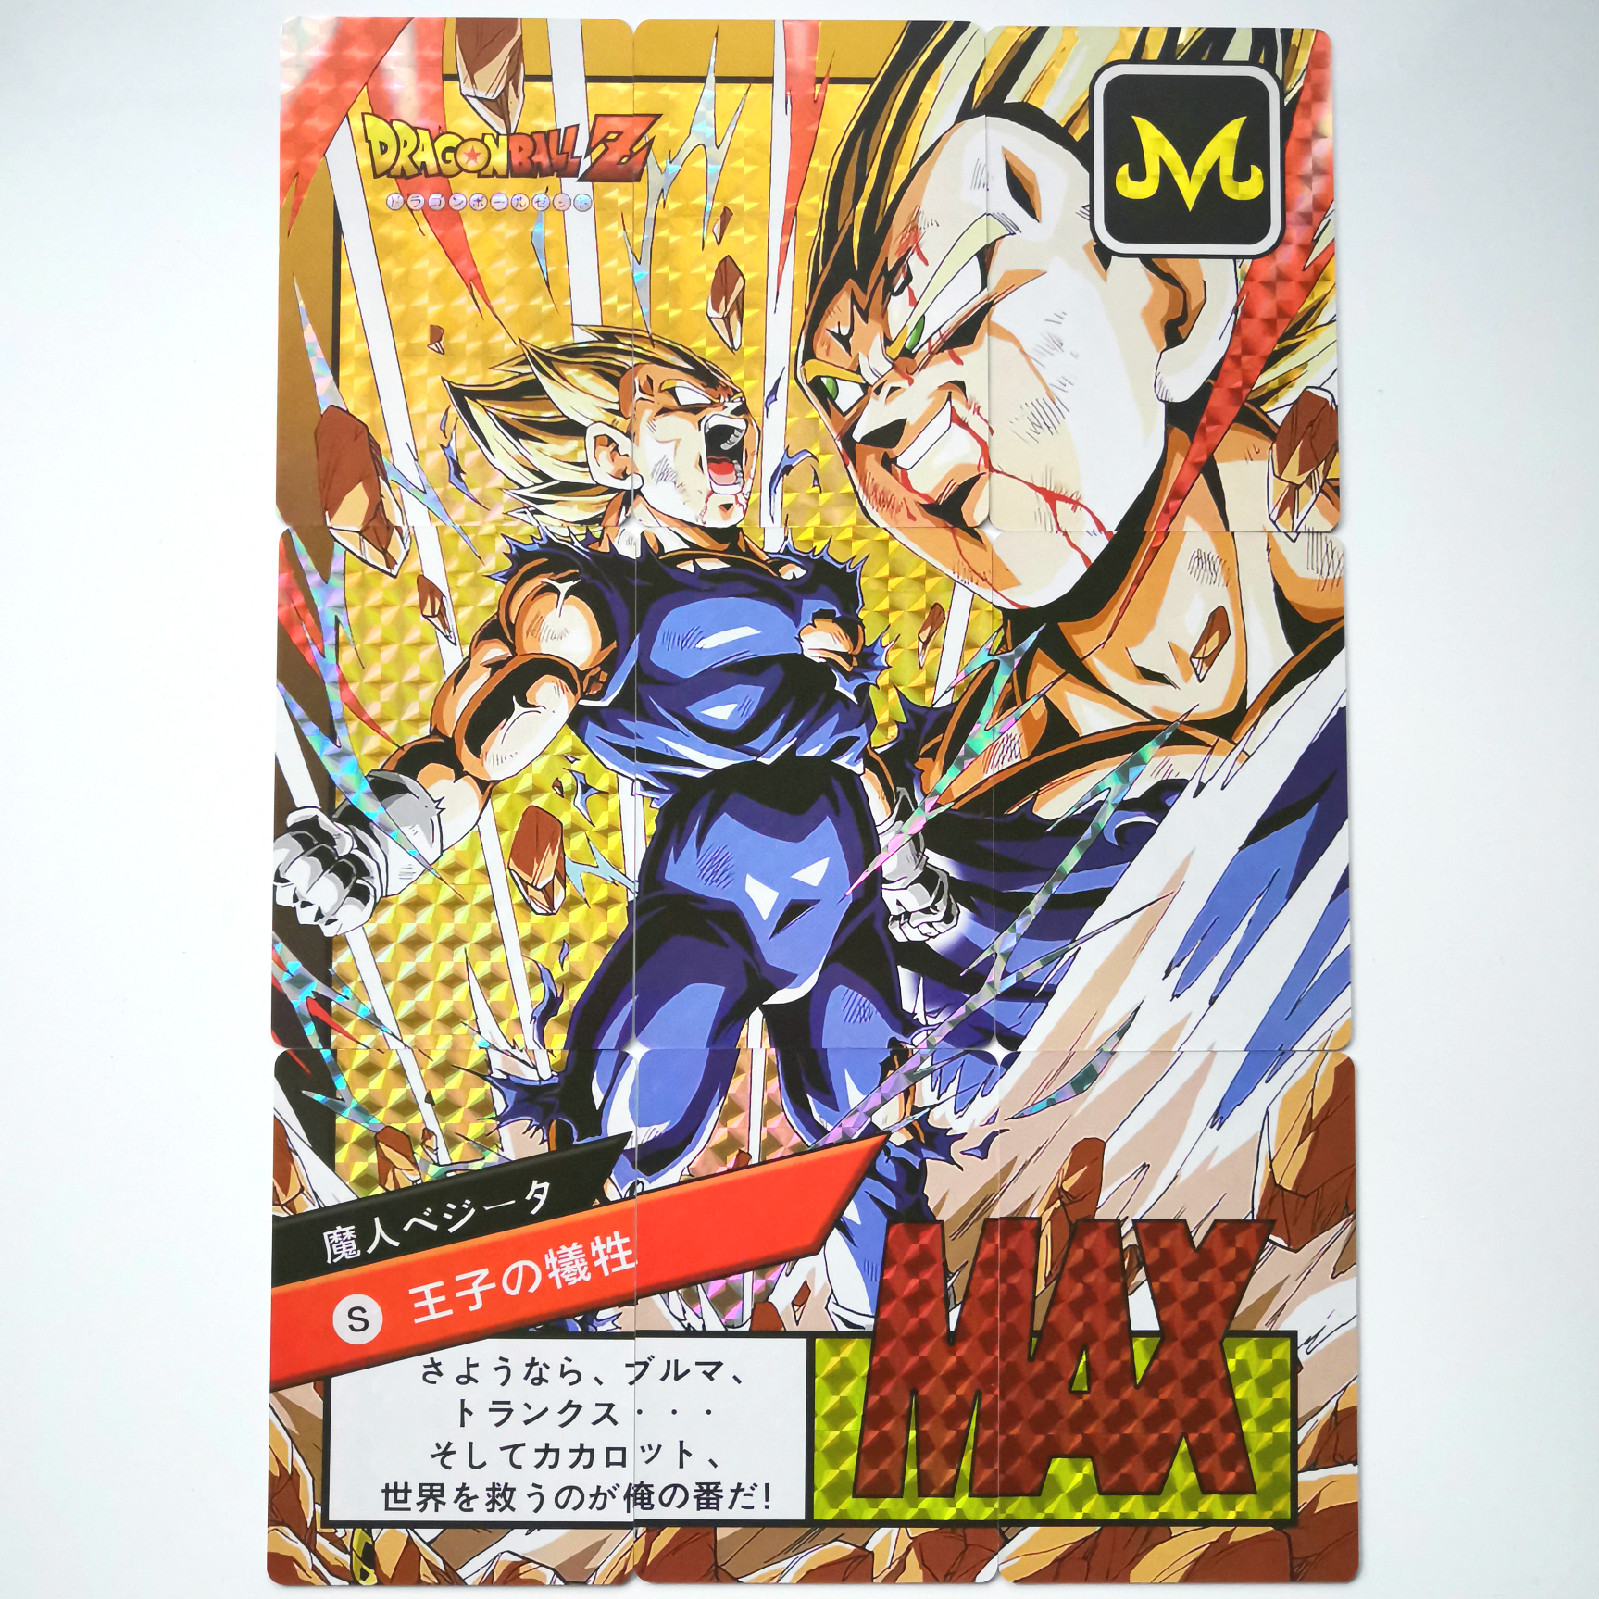 9pcs Super Dragon Ball Z Heroes Battle Card Ultra Instinct Goku Vegeta Super Game Collection  Anime Cards